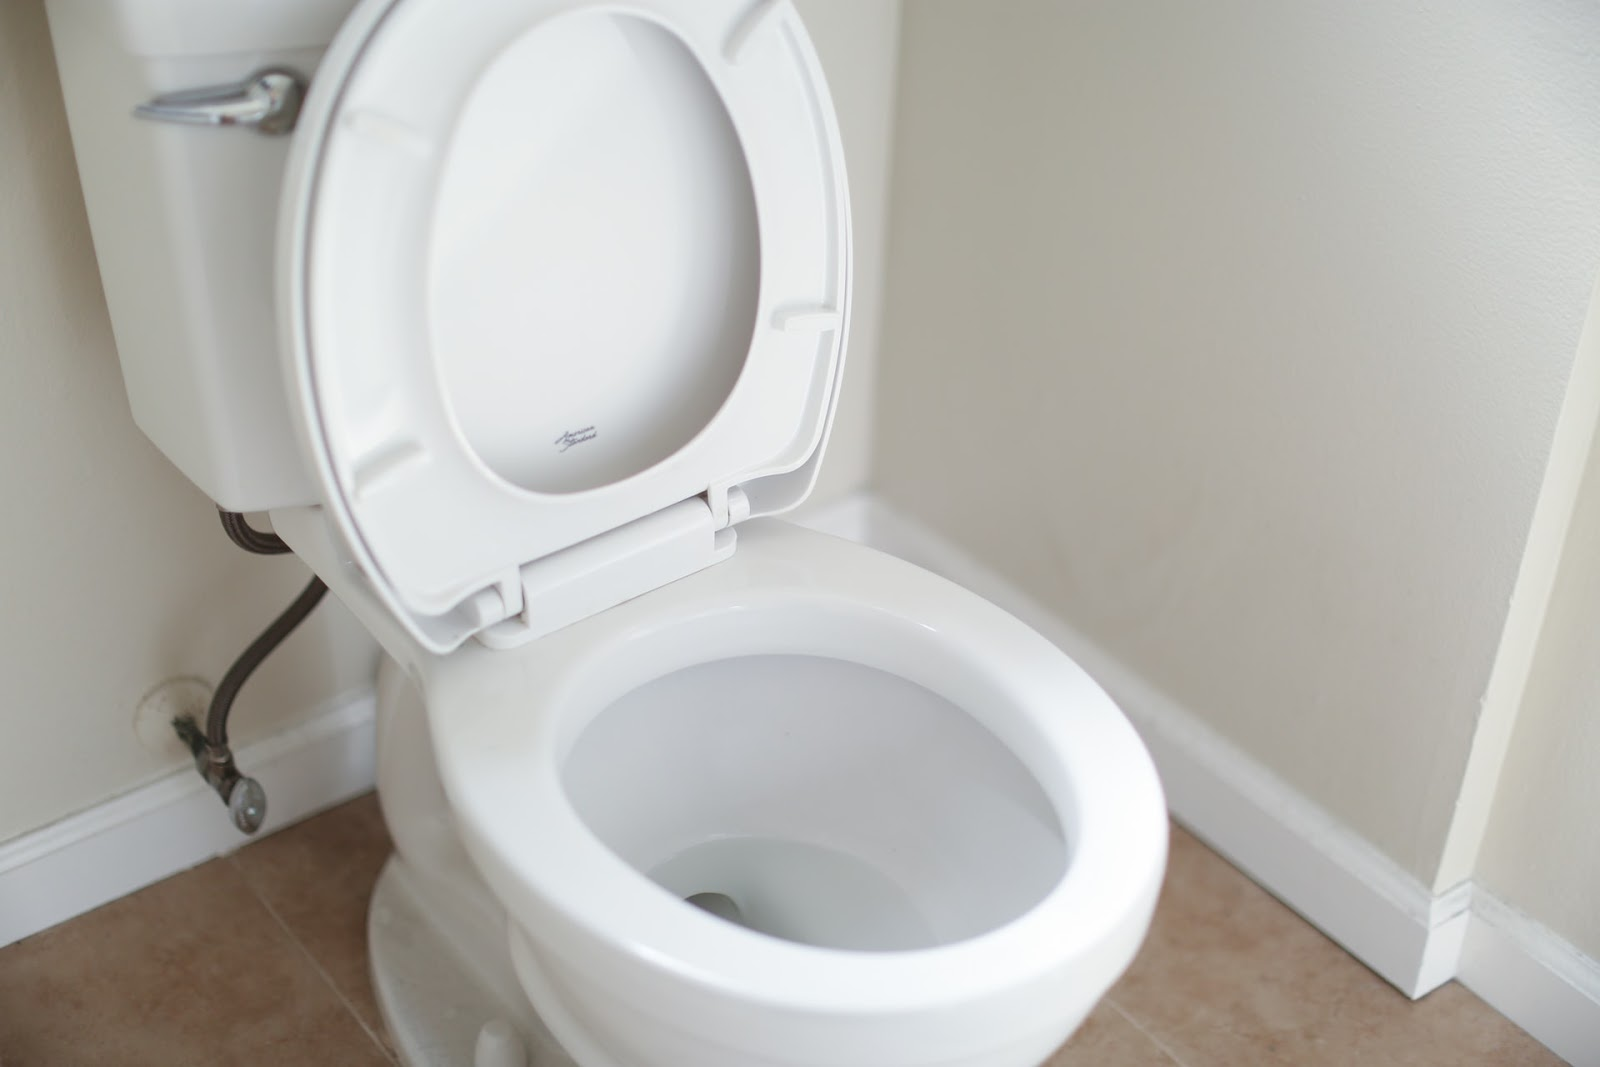 A white toilet with the seat up.